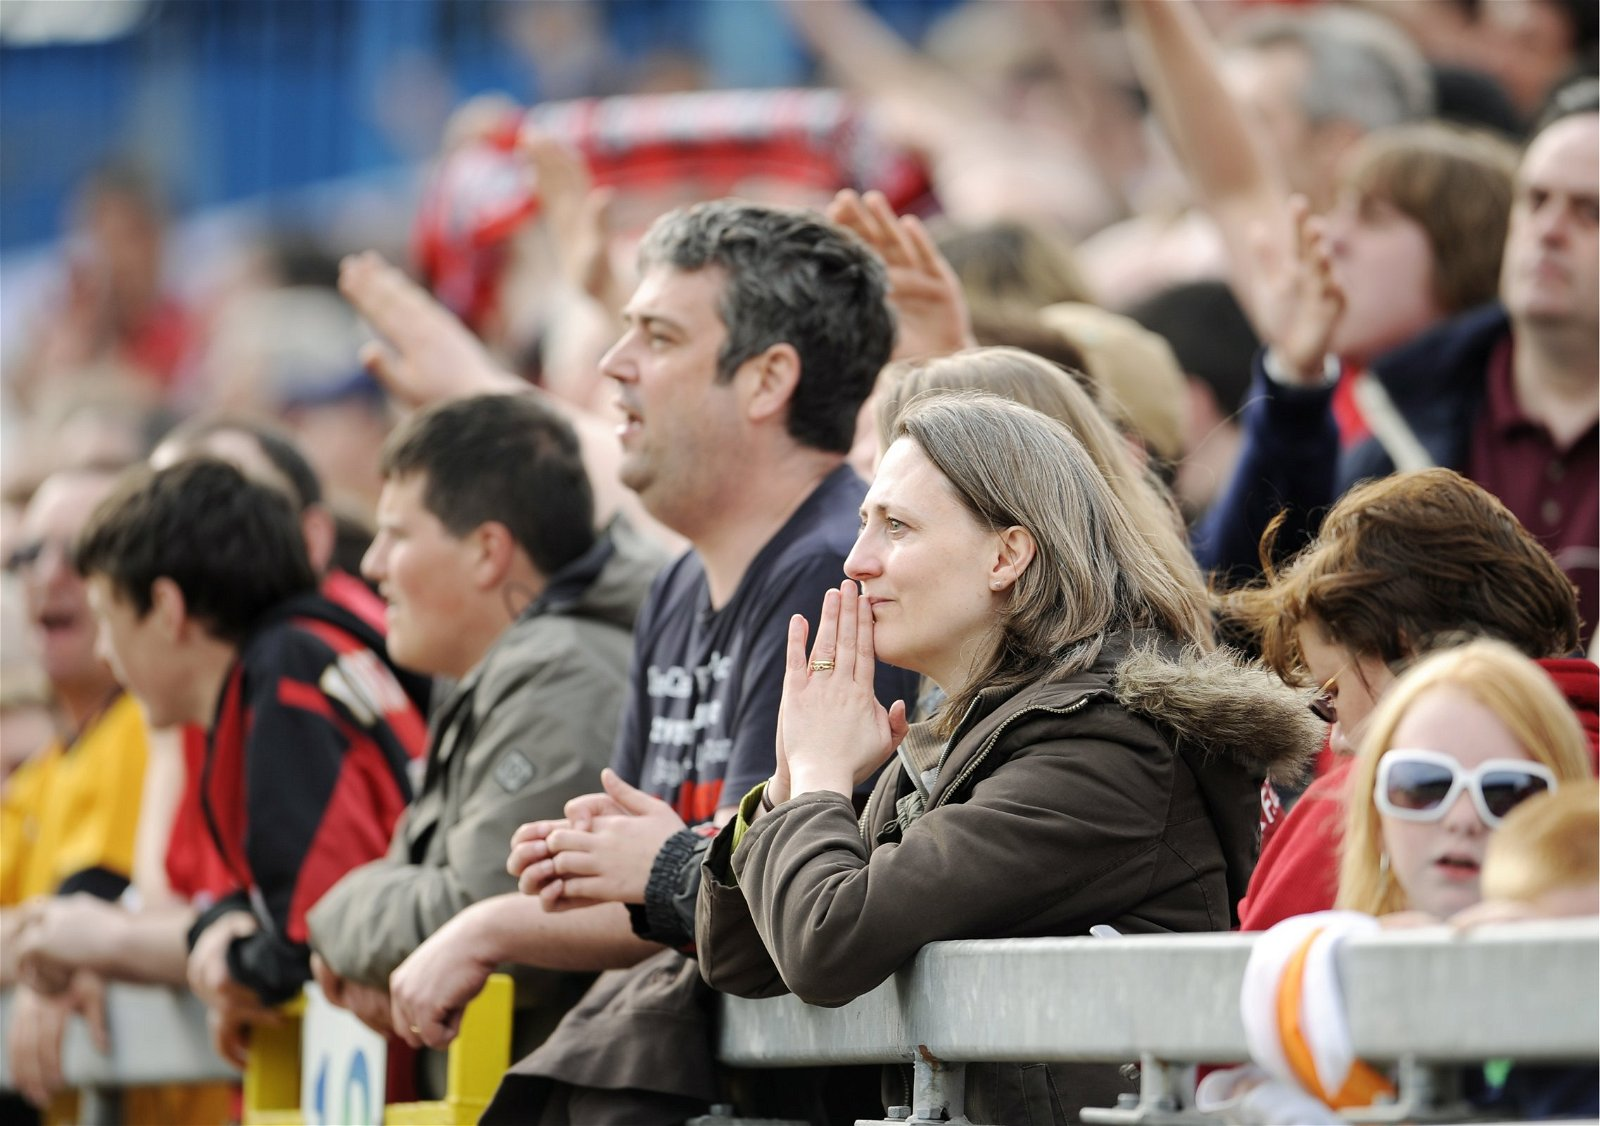 AFC Bournemouth fans during a Coca-Cola Football League One match with Carlisle United in May 2008